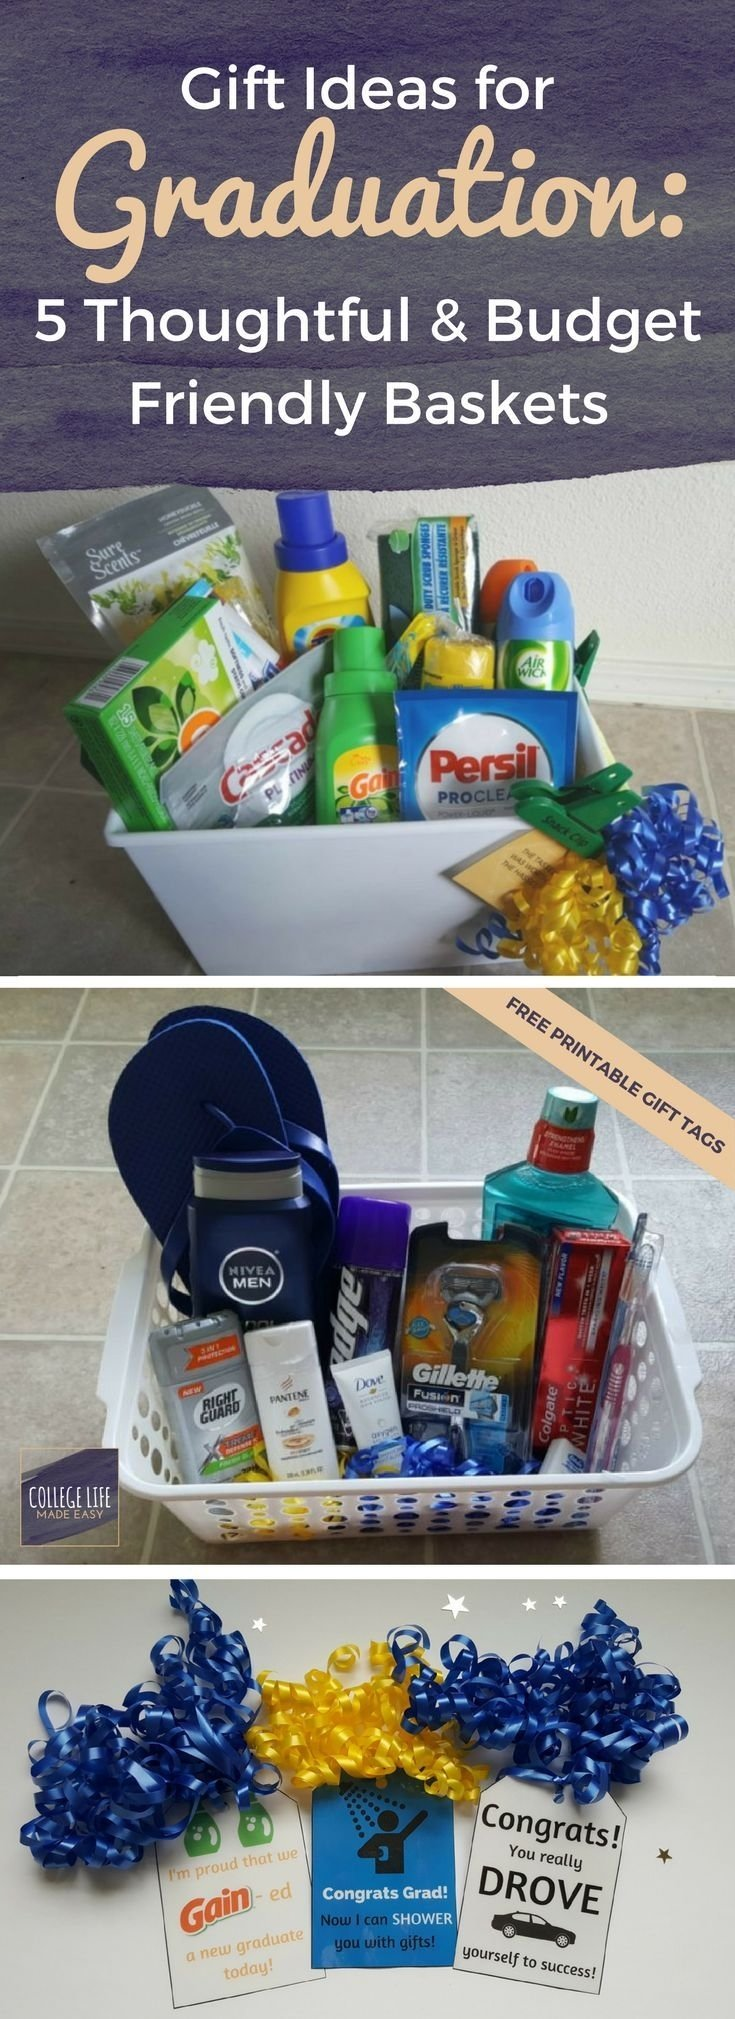 10 Spectacular Middle School Graduation Gift Ideas 276 best graduation gift ideas images on pinterest cute ideas 8 2020